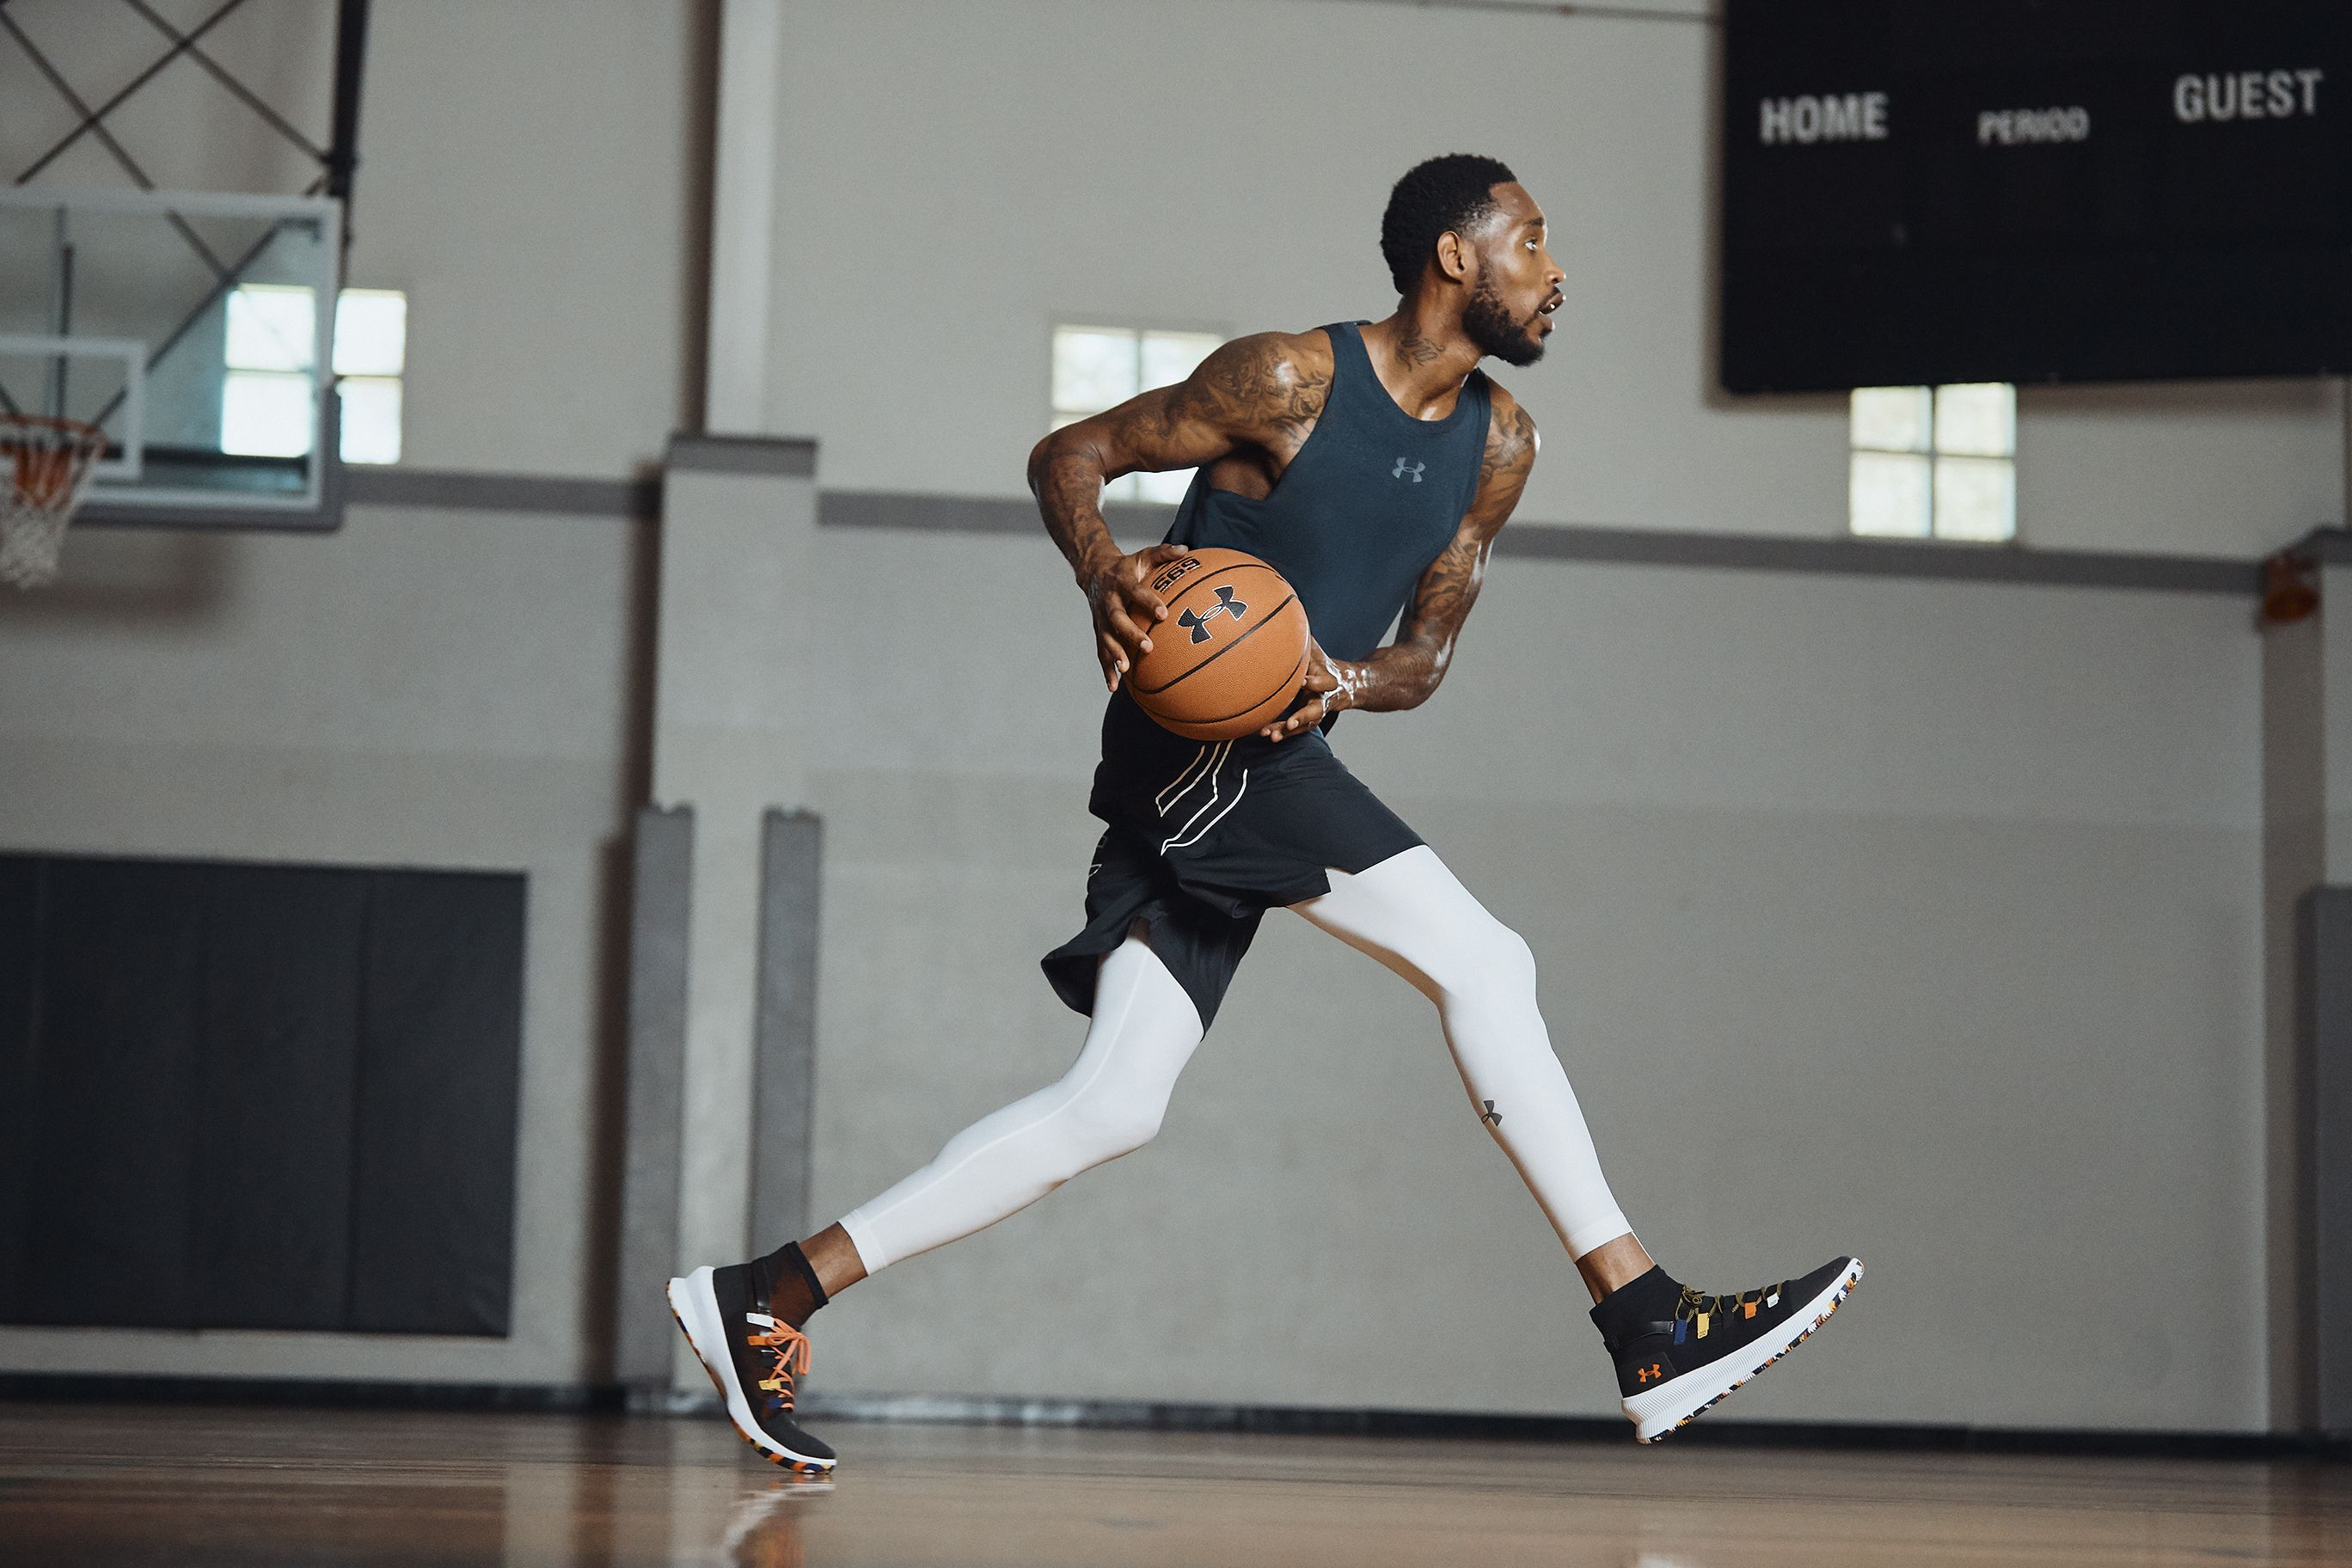 carga perfil compartir  Lympo Shop | Under Armour together with NBA players launches new M-Tag  basketball shoes